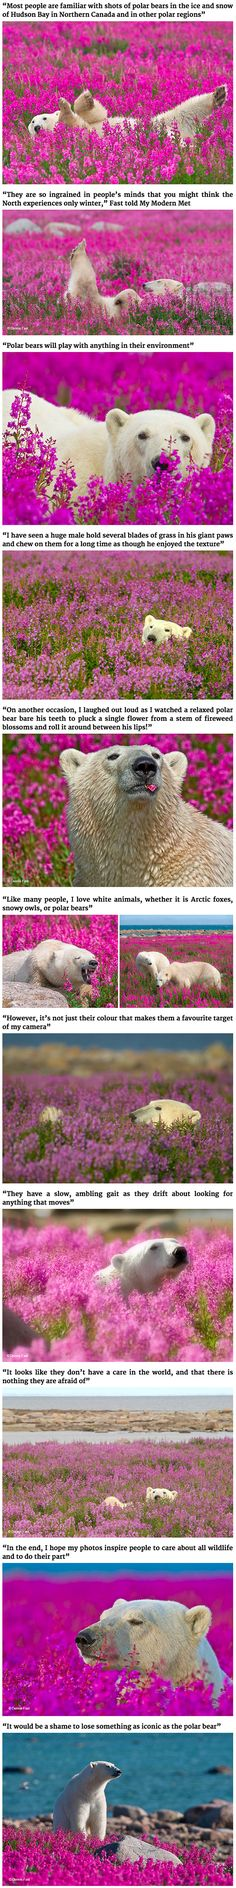 We rarely see polar bears outside of a snowy Arctic environment, but these bears are no strangers to having fun in the summer! In a rare series of images by Canadian photographer Dennis Fast, these white giants are seen frolicking in a field of fireweed. The photos were taken in Northern Canada's Hudson Bay, near lodges run by Churchill Wild in Manitoba.